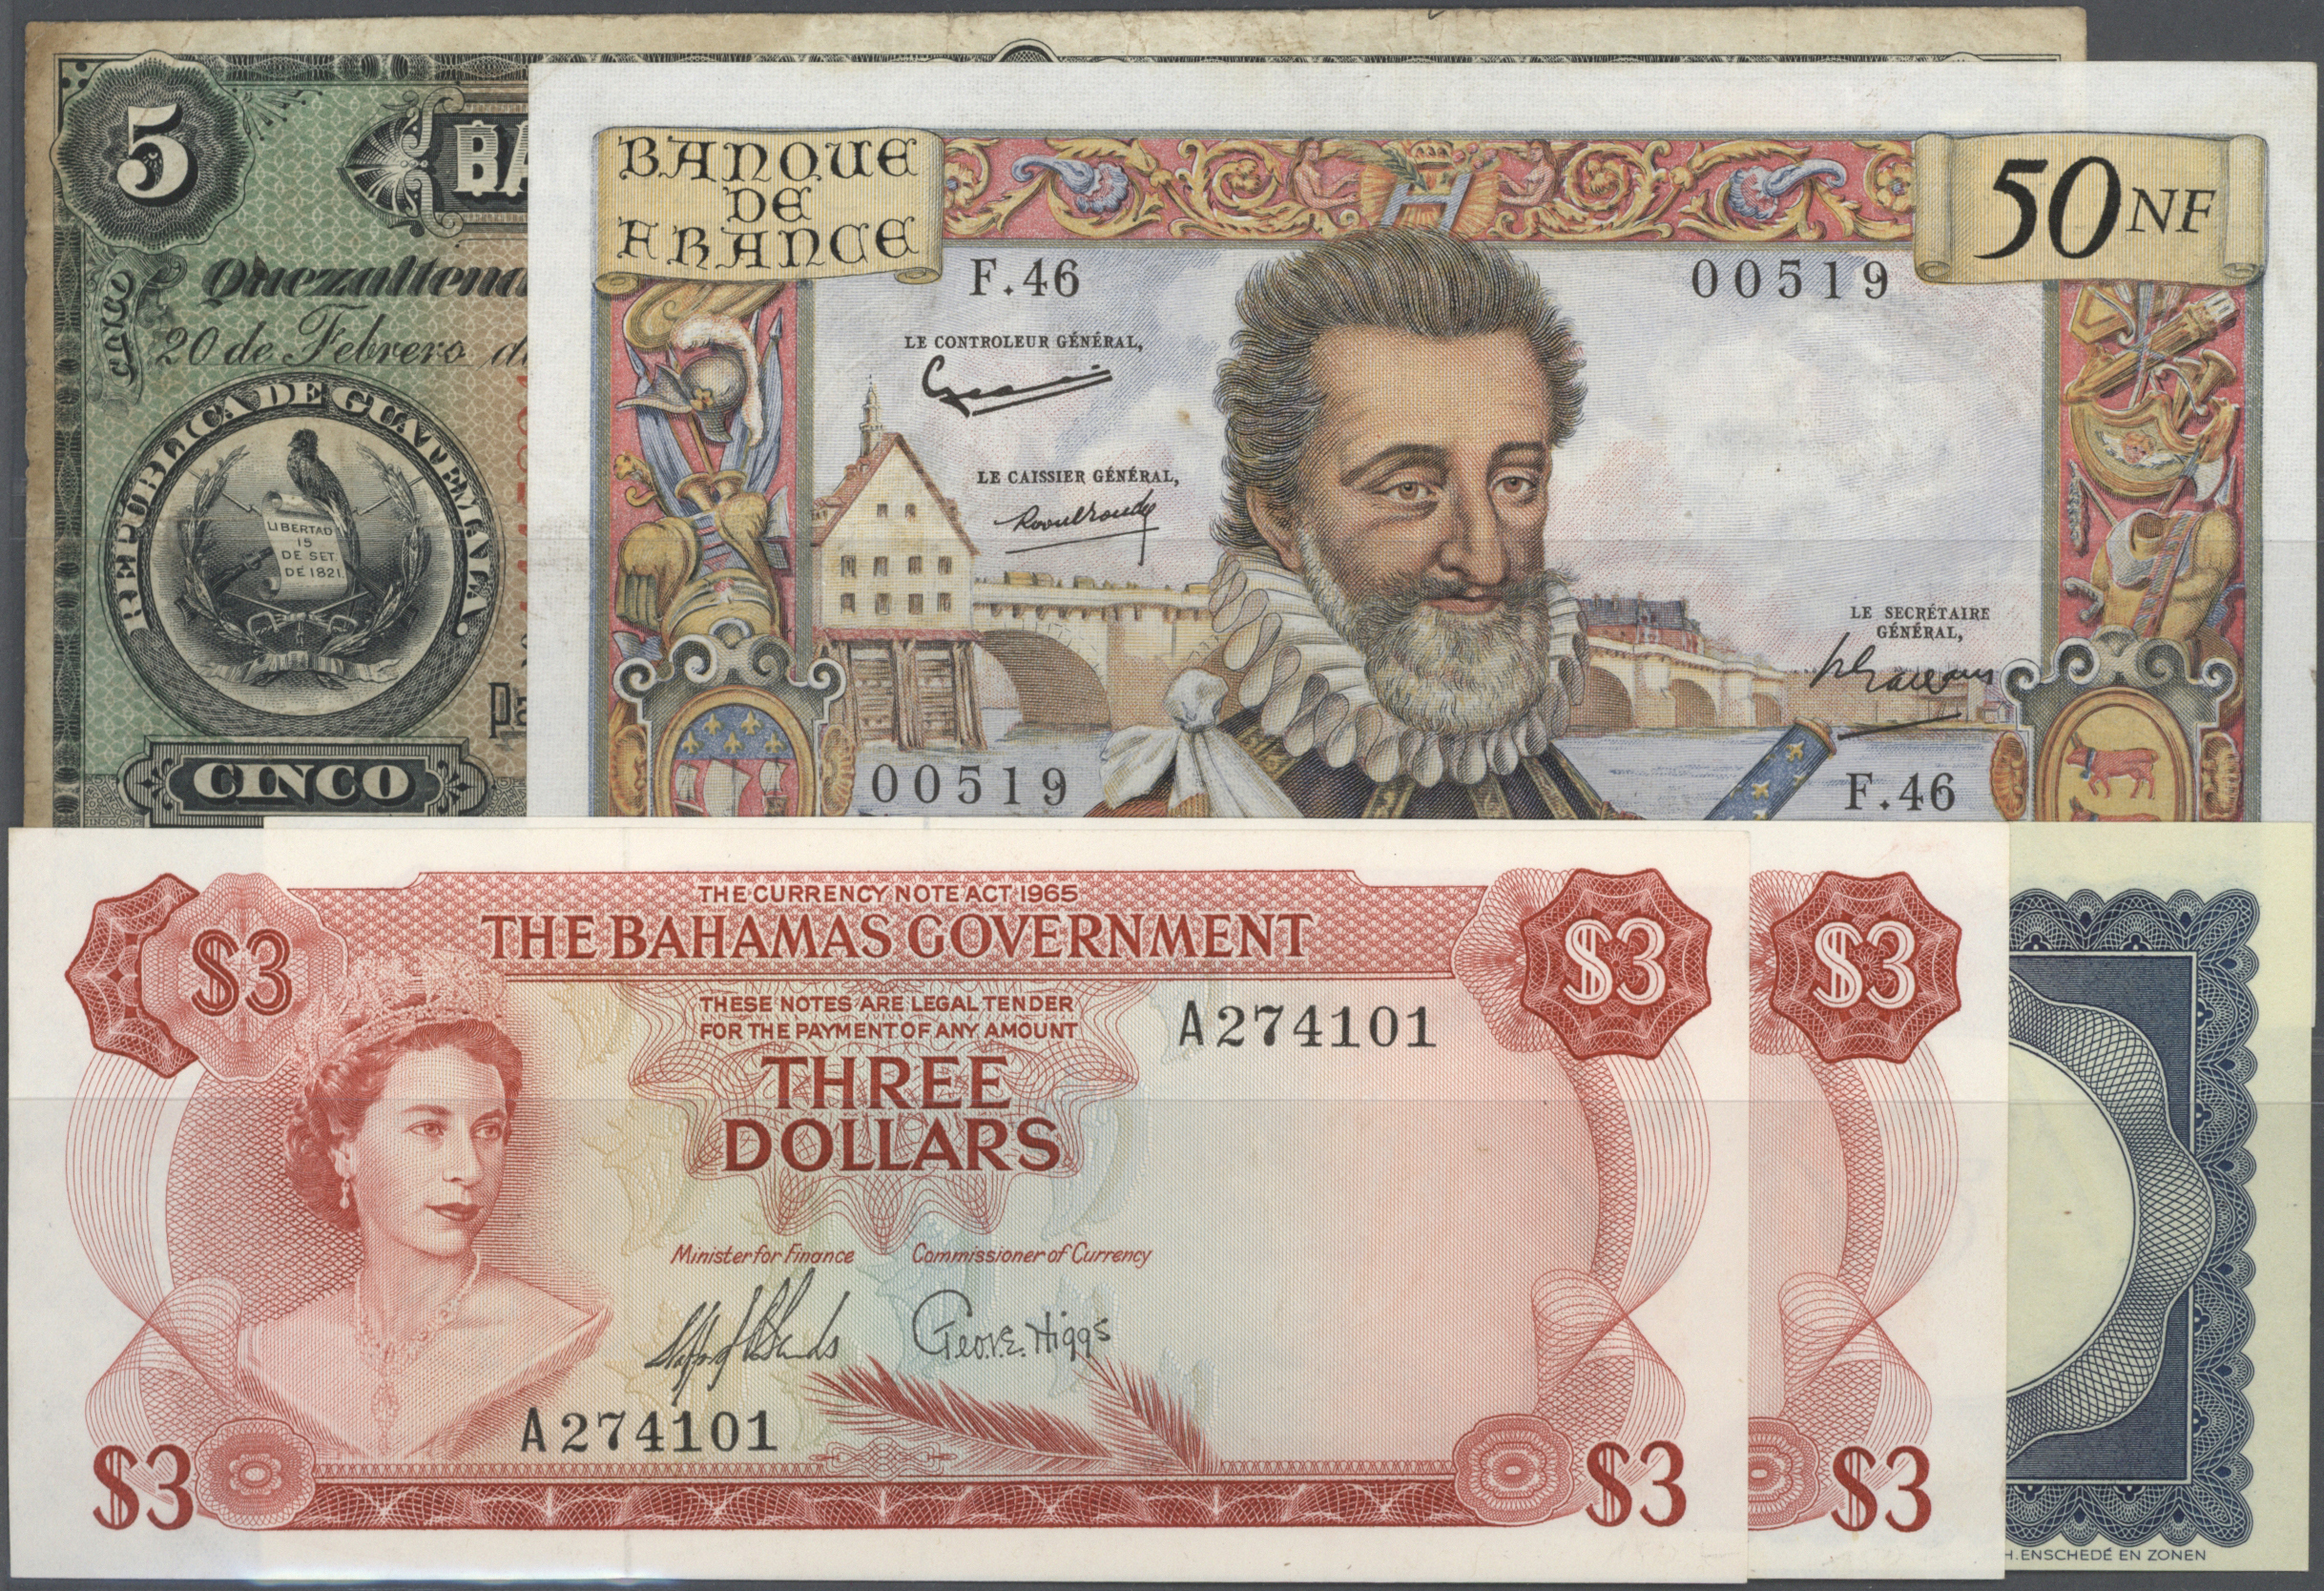 Karibik Guyana 50 Dollars 2016 Commemorative Unc P New Available In Various Designs And Specifications For Your Selection Amerika